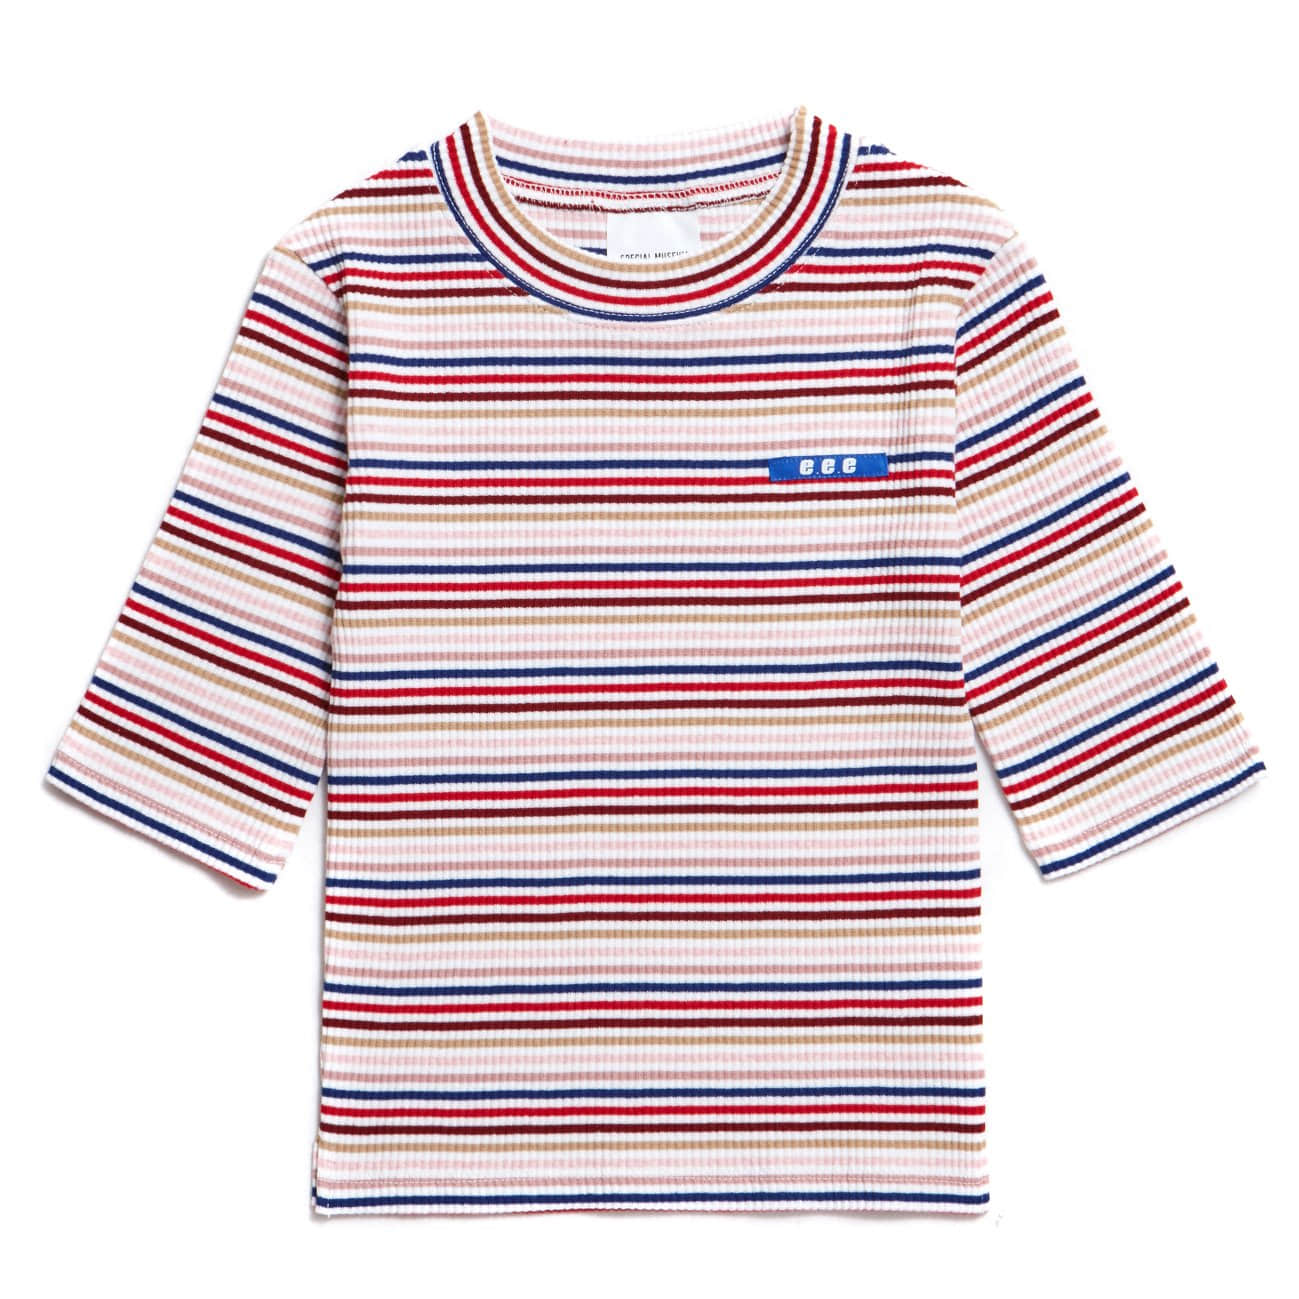 EVAN MULTI STRIPE - WHITE&PINK